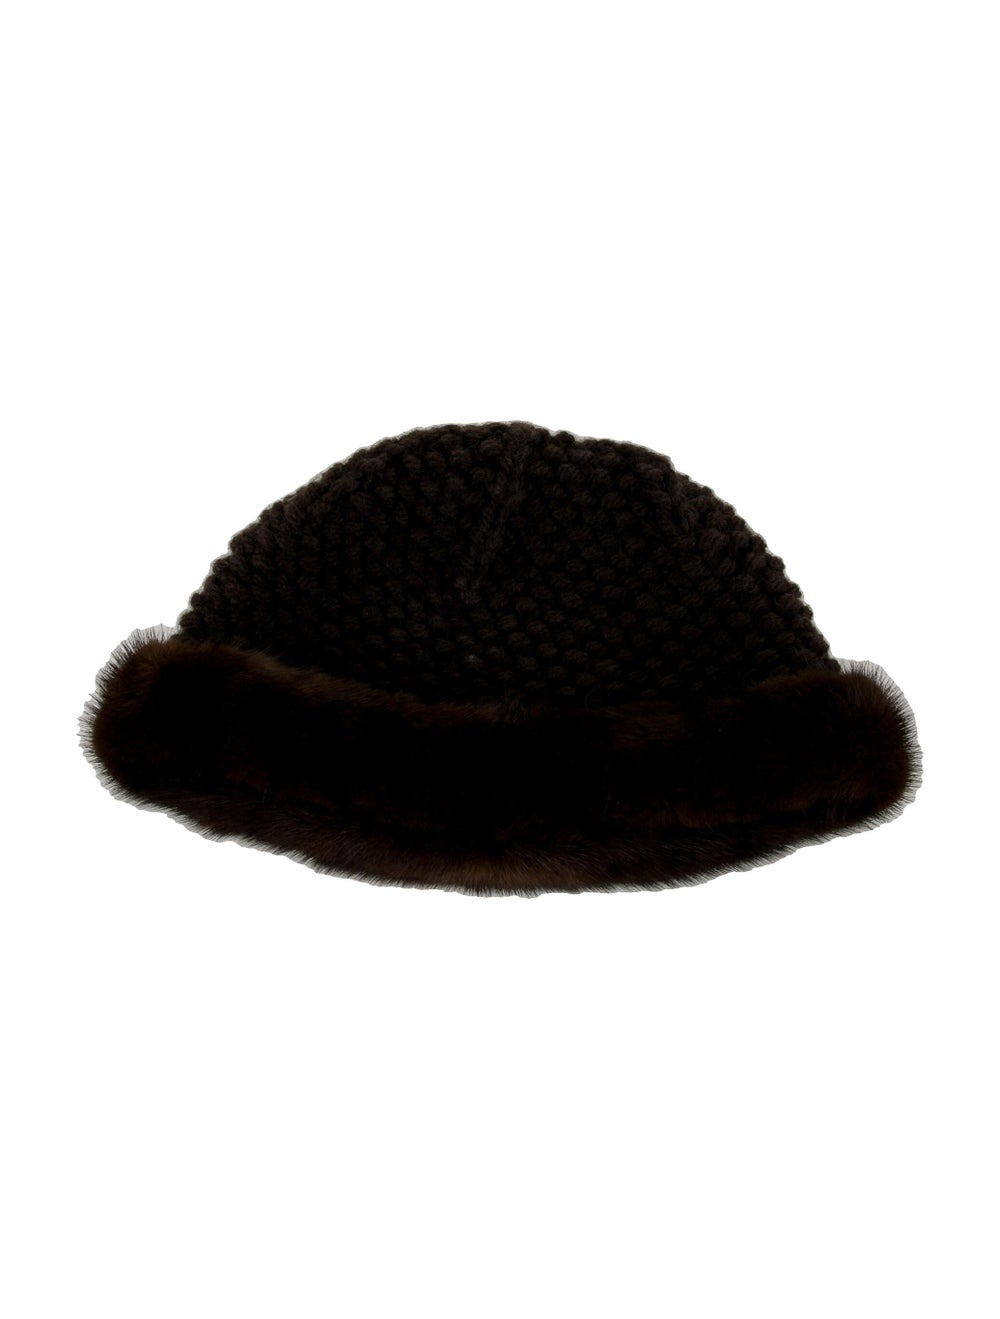 Patricia Underwood Knitted Mink Hat Brown - image 1